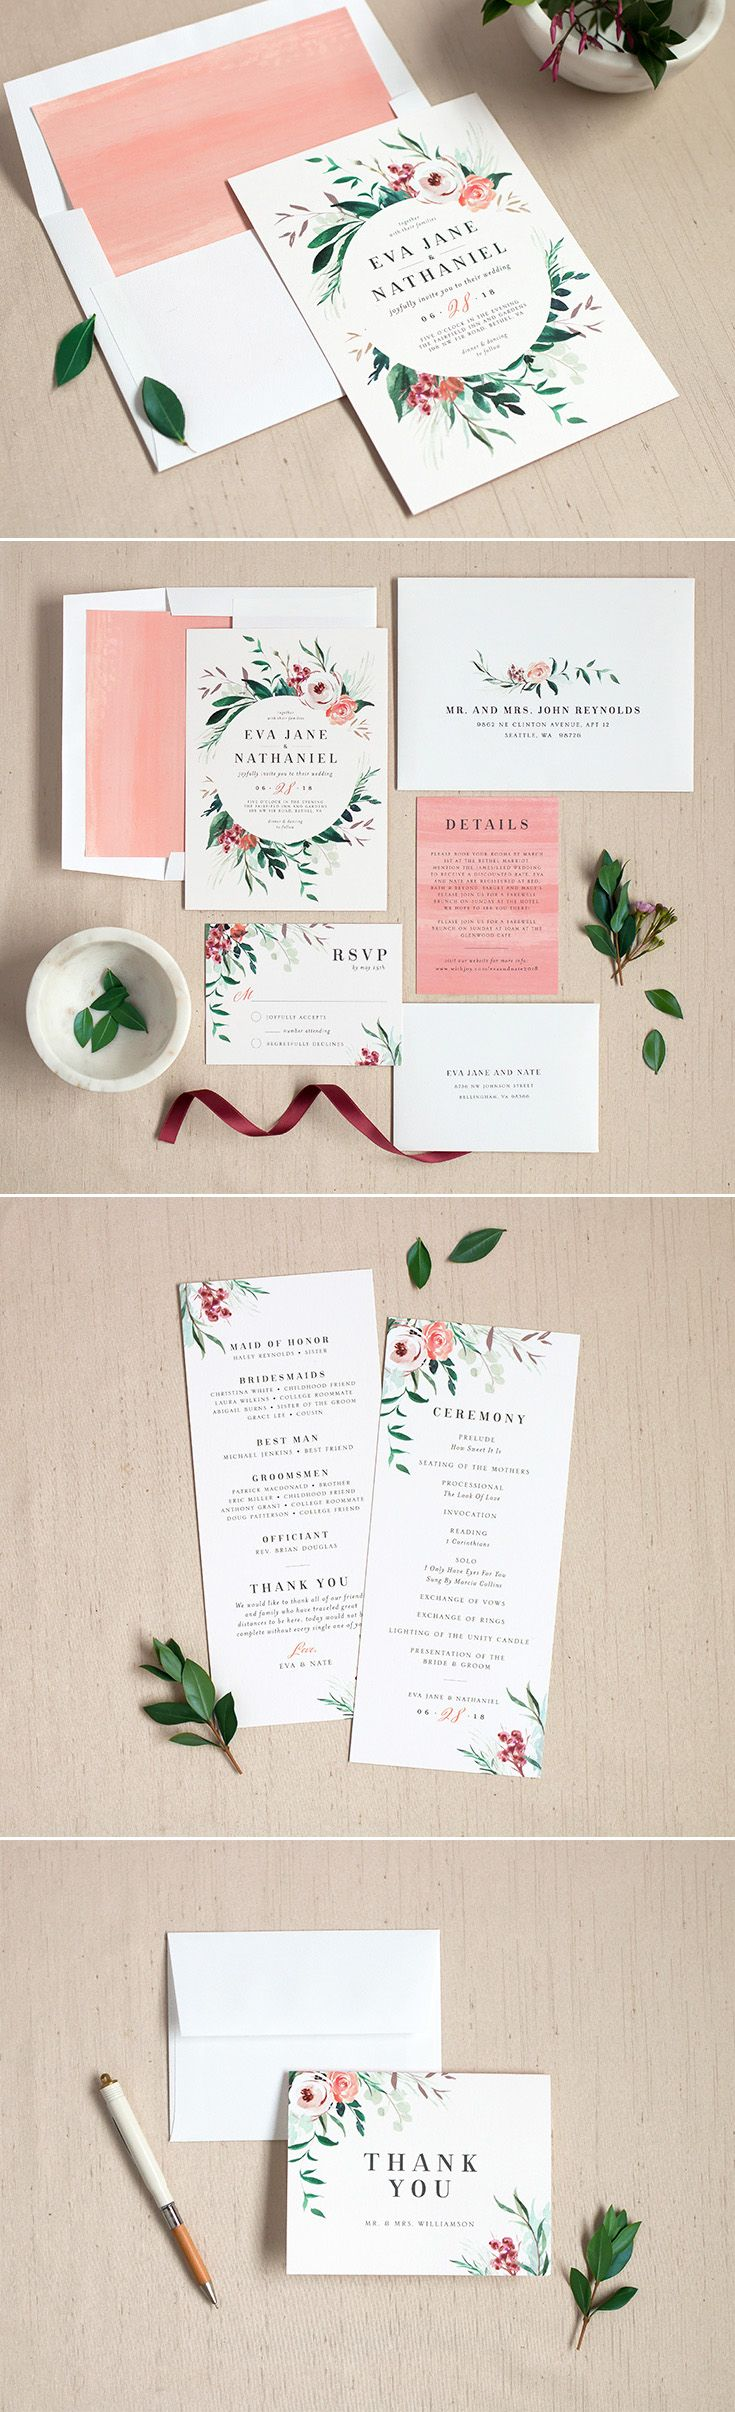 Wild Wreath wedding invitation suite with gorgeous florals and greenery. Available at elli.com.